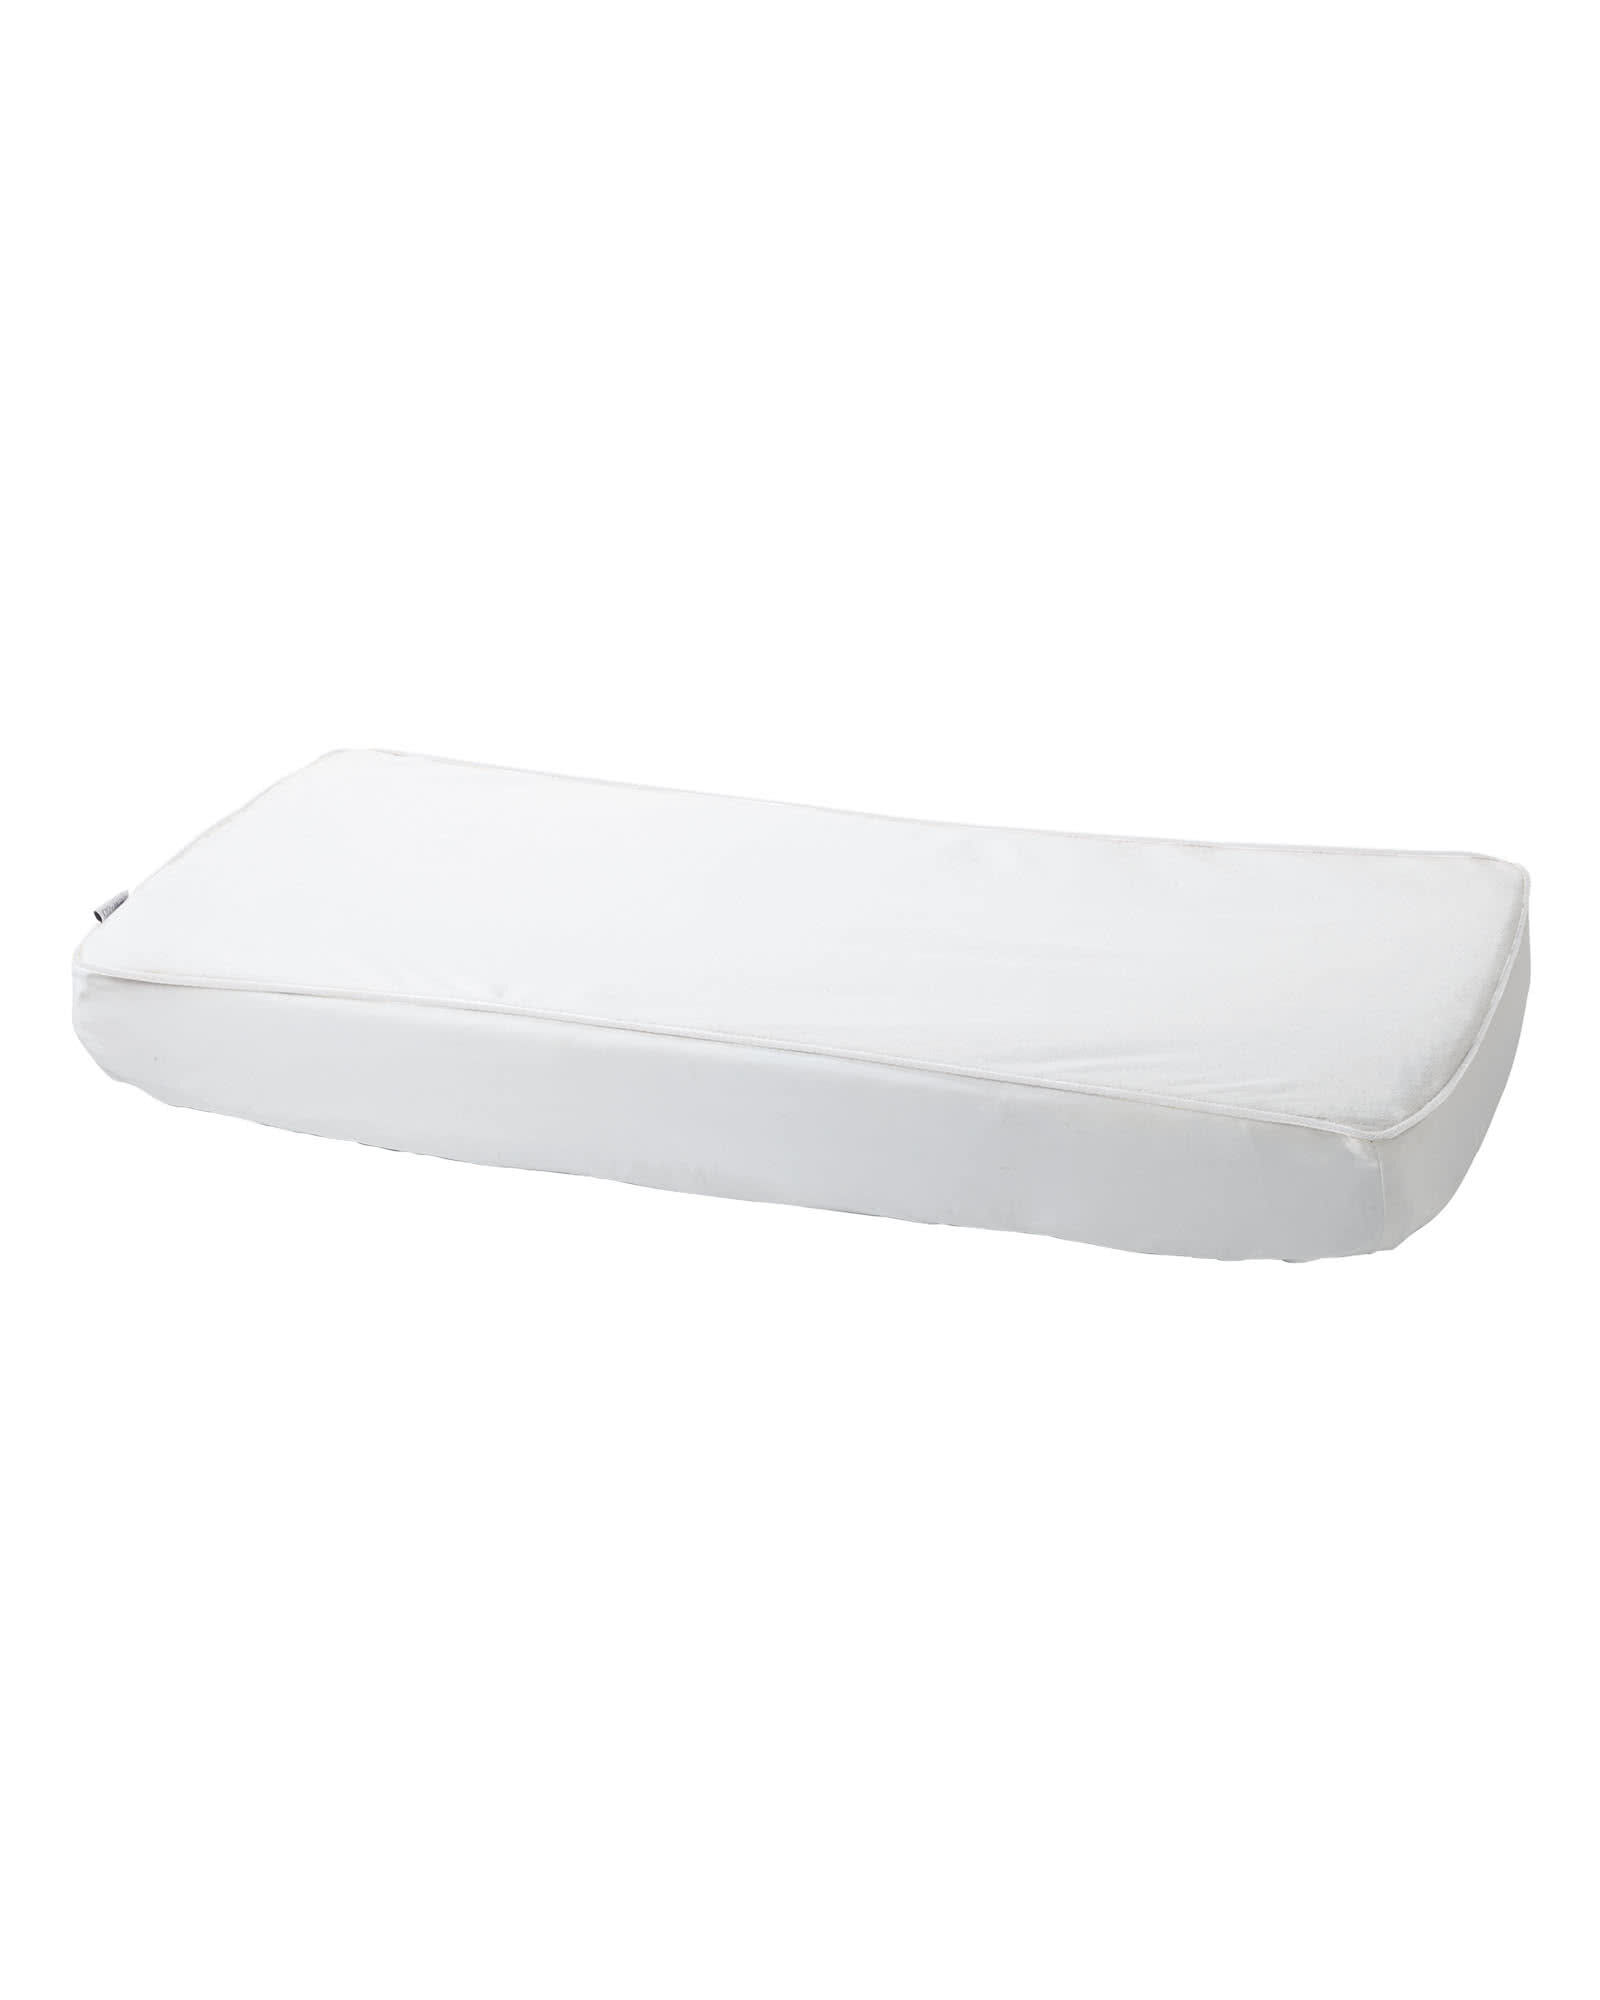 Nursery Basics Diaper Changing Cover,